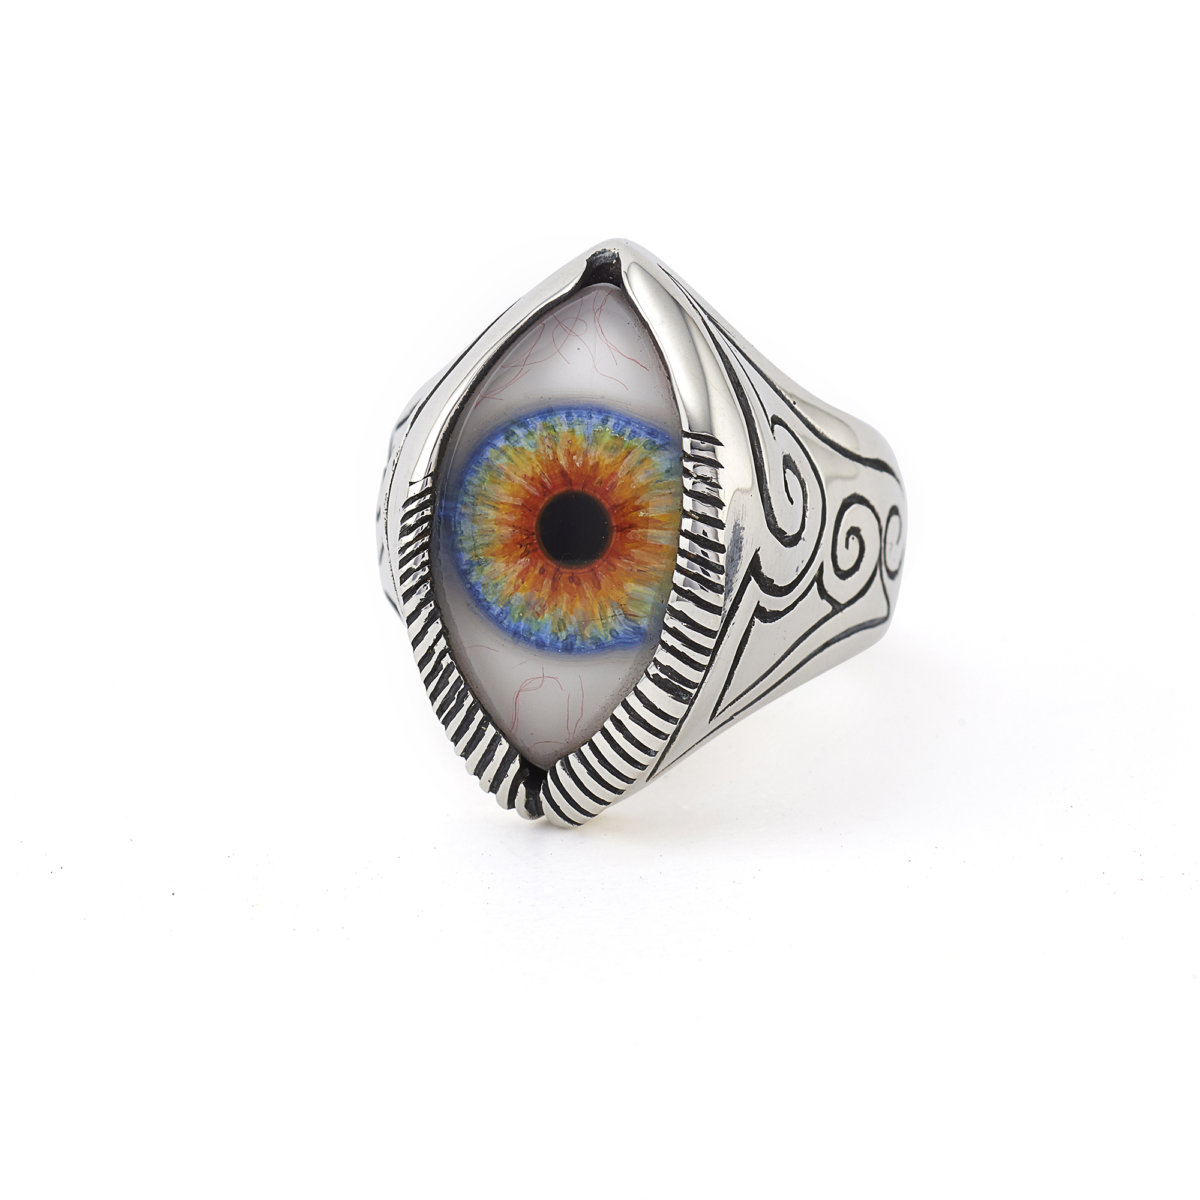 Special Edition: Eclipse Eye Ring